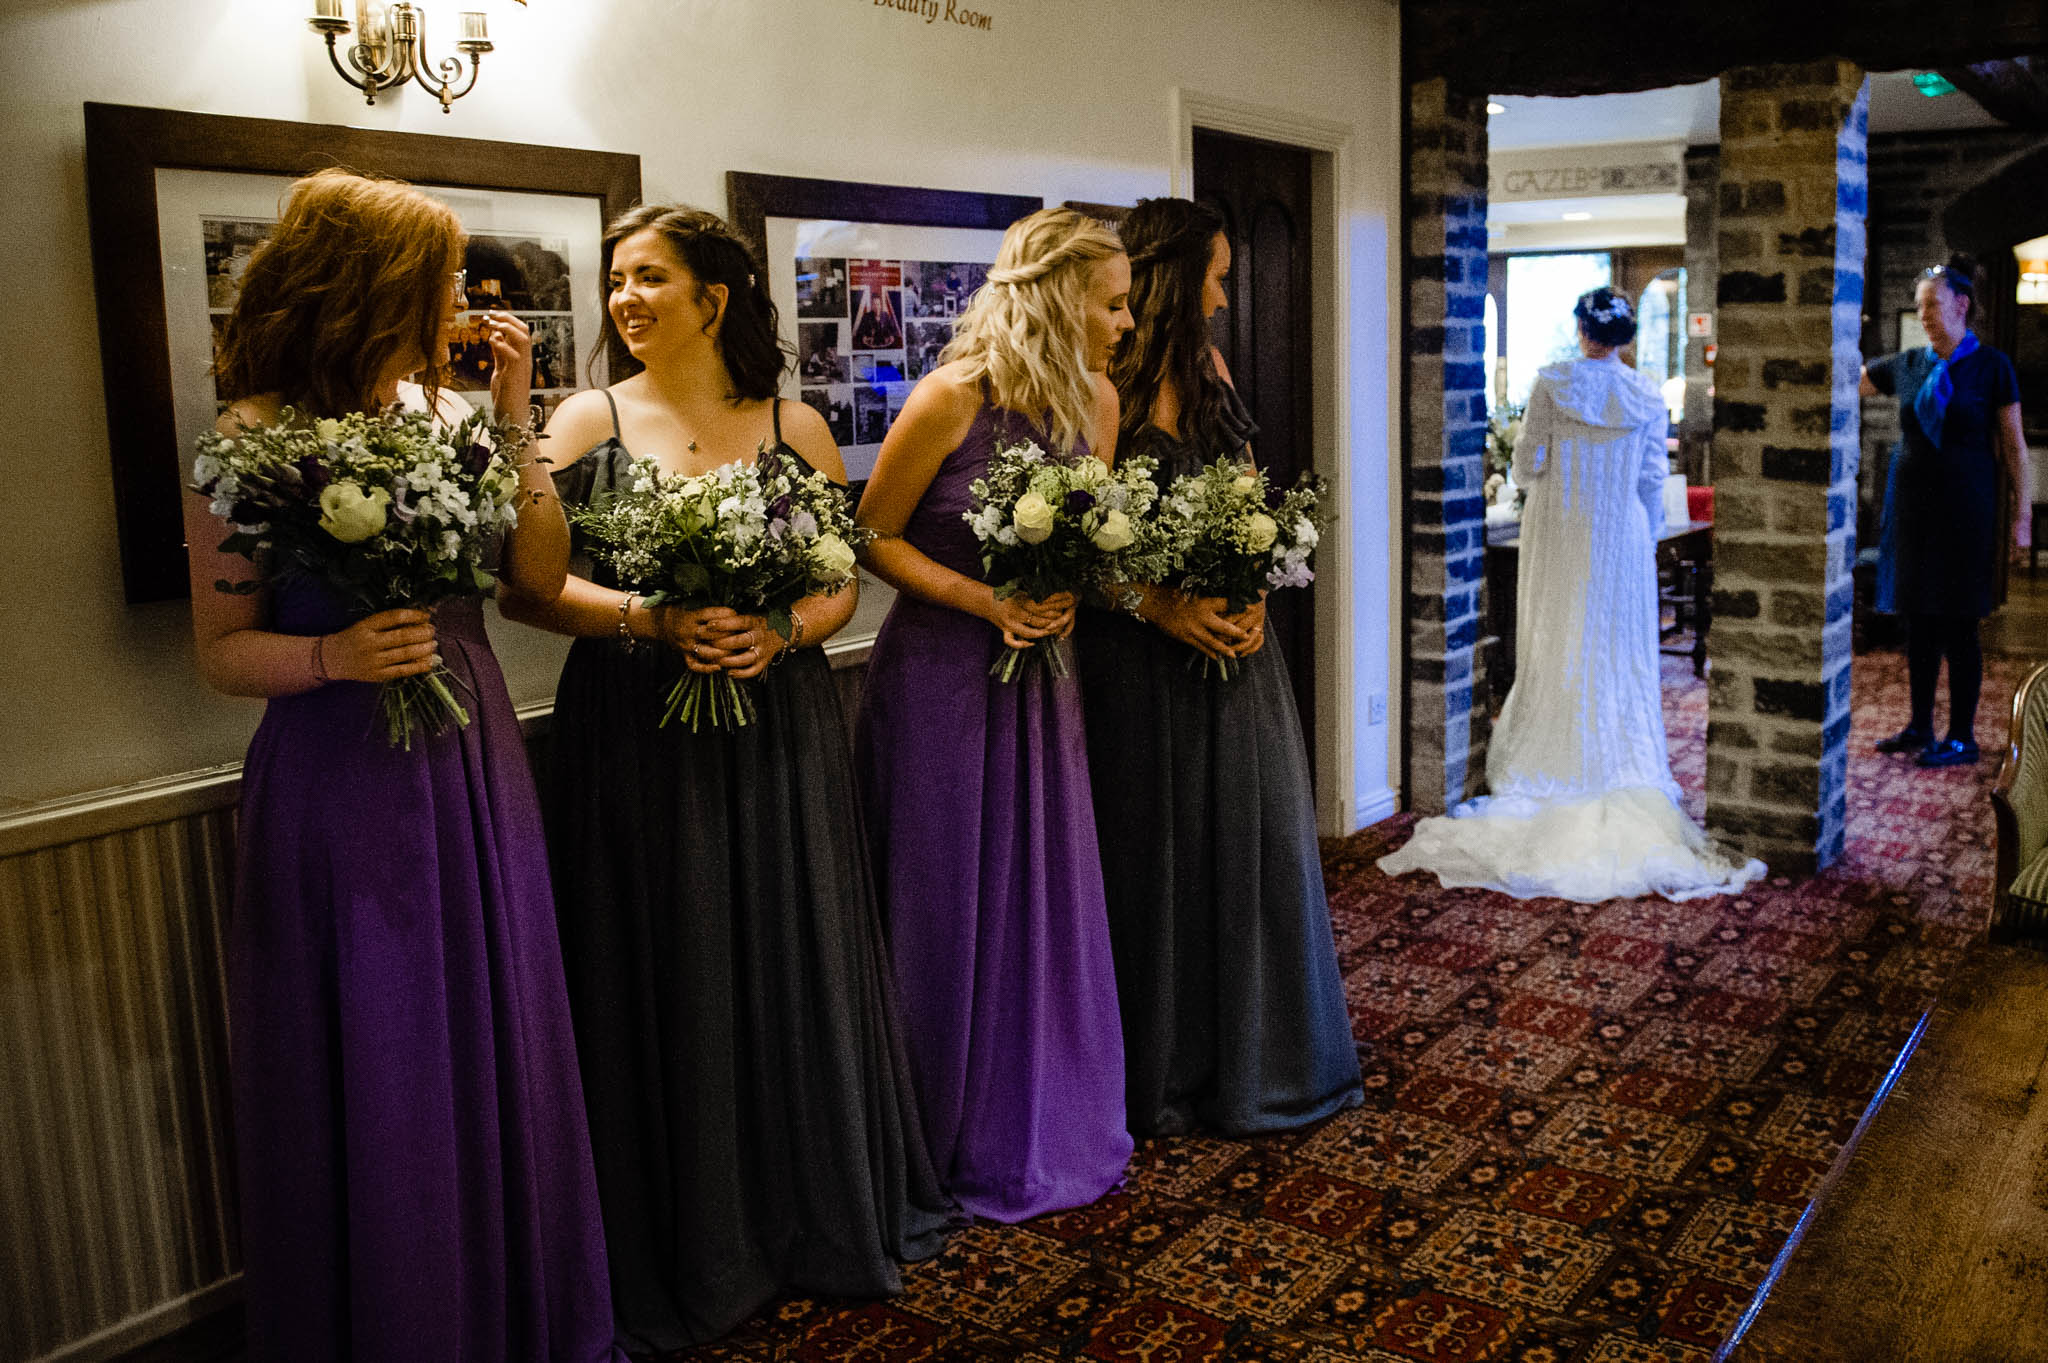 The bridesmaids see the bride in her dress for the first time